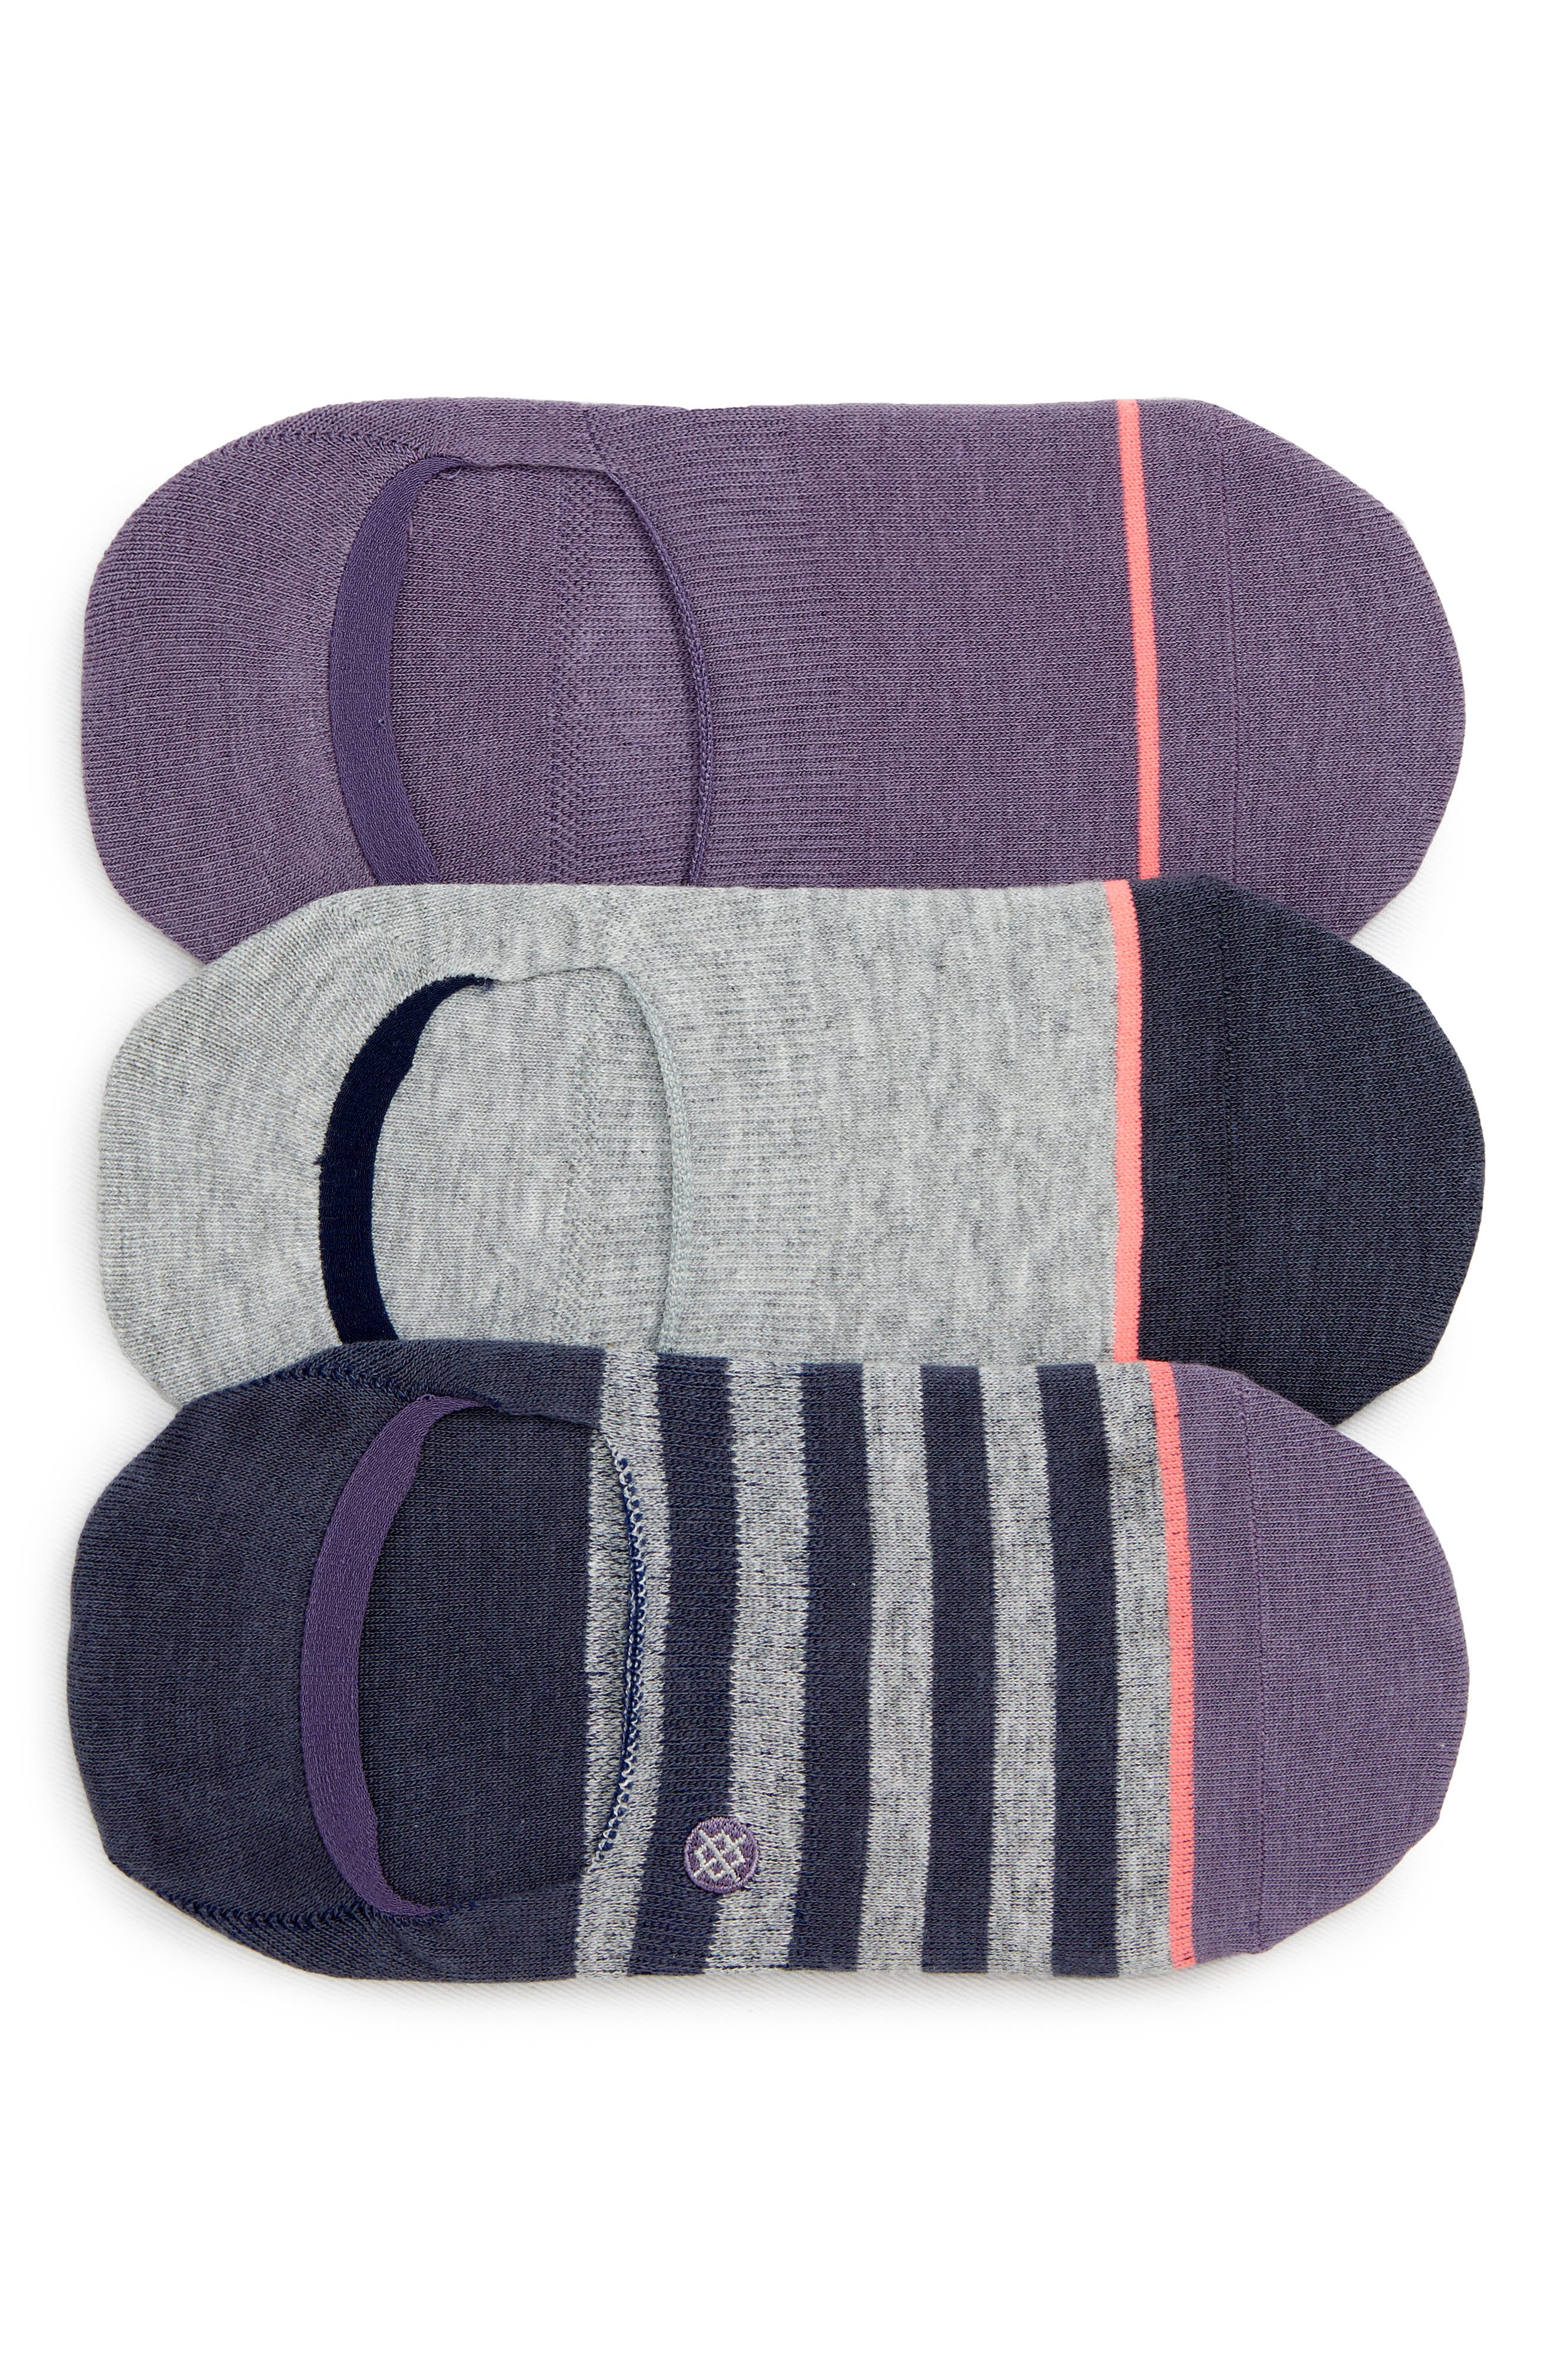 Stance Women/'s No Show Socks Sensible 2.0 Invisible 3 Pack Medium